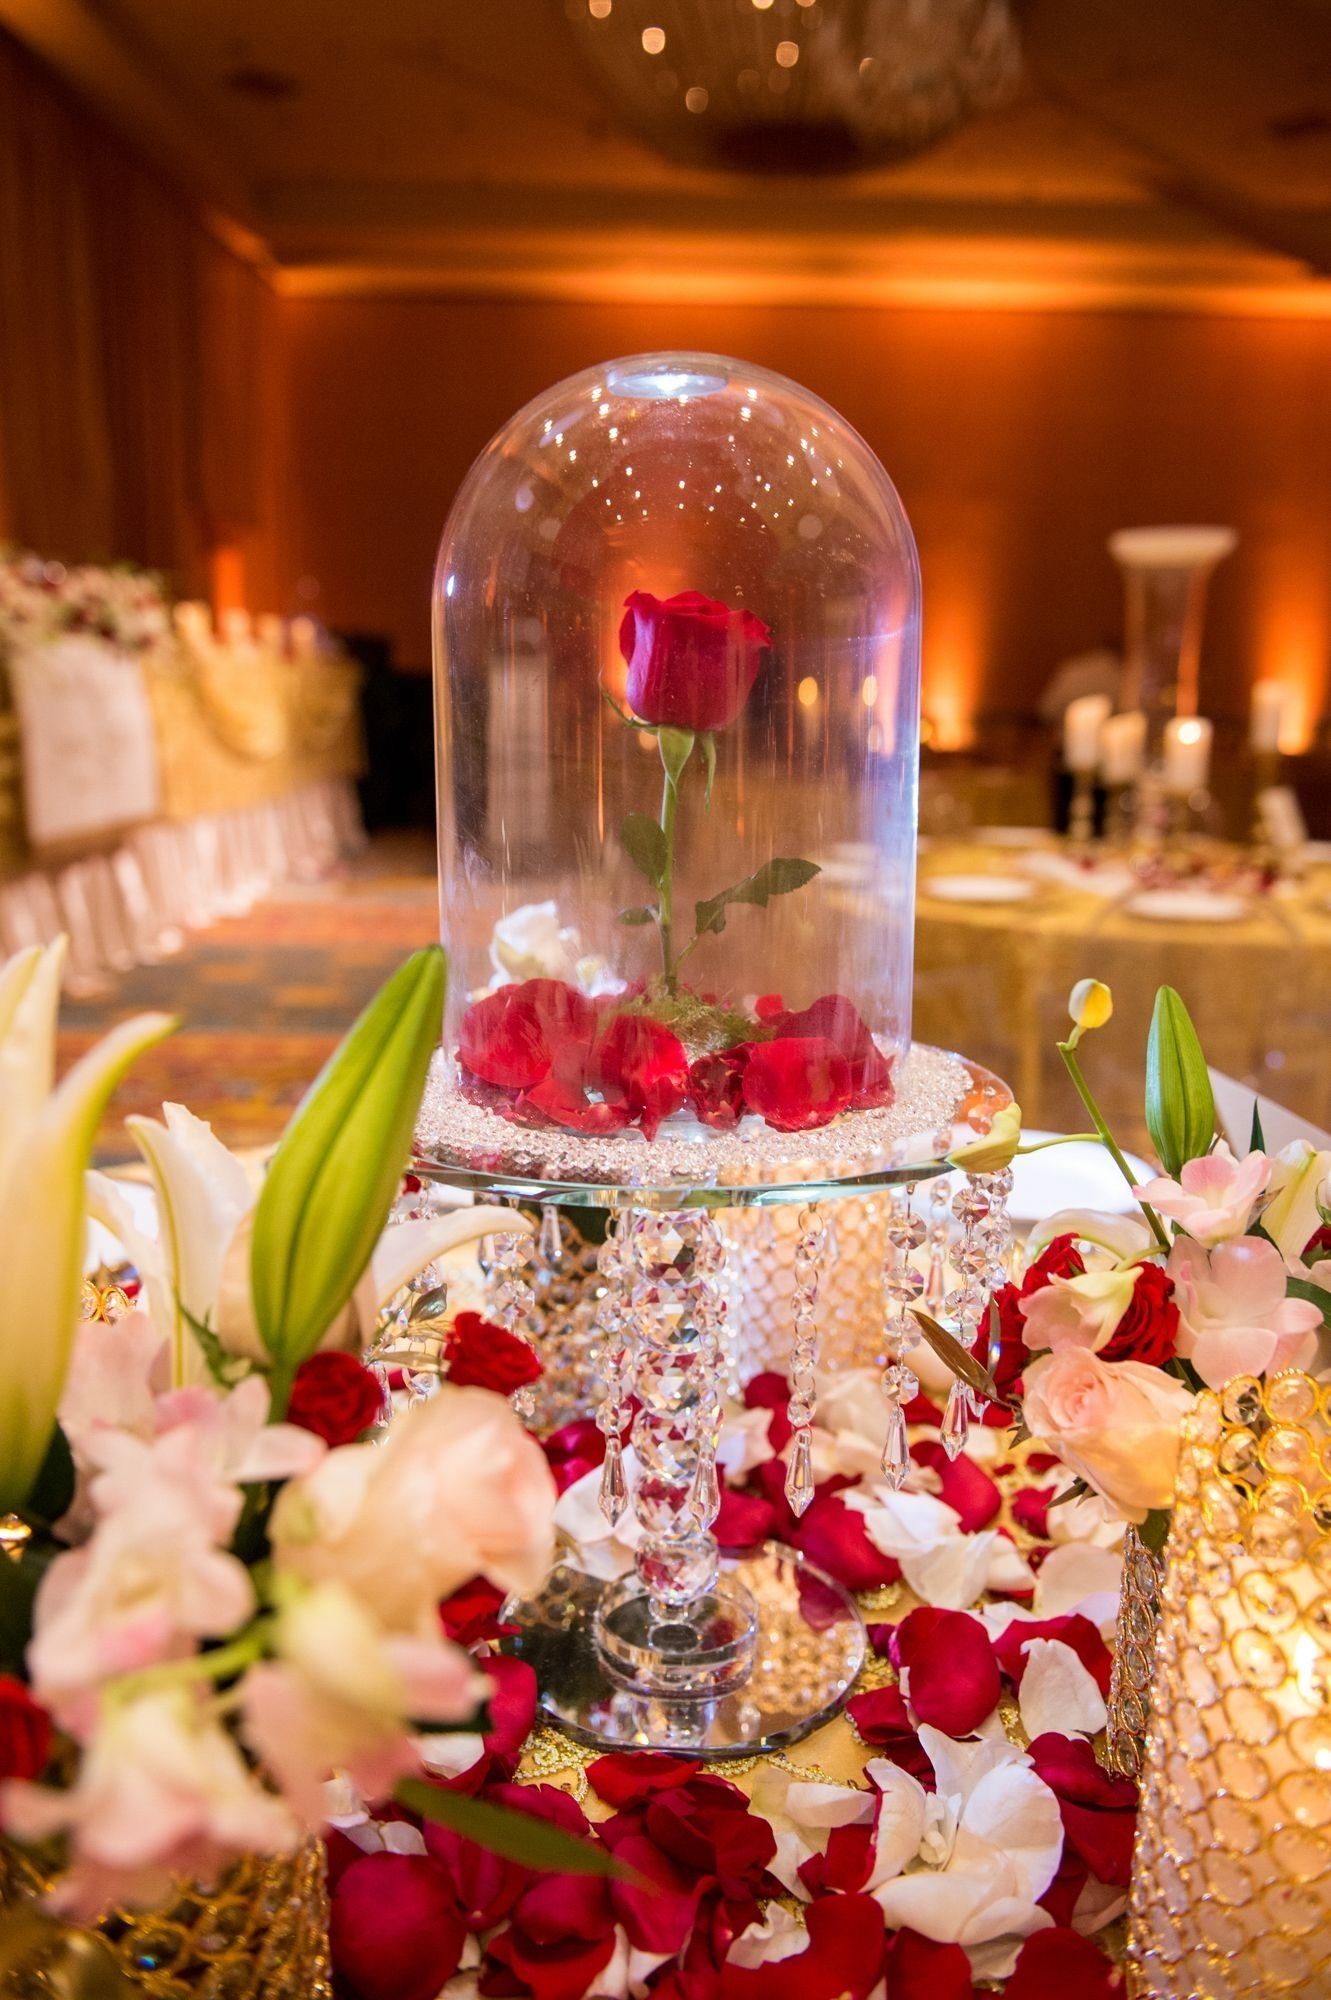 10 Gorgeous Beauty And The Beast Wedding Theme Ideas rose dome centerpiece inspiredbeauty and the beast beauty and